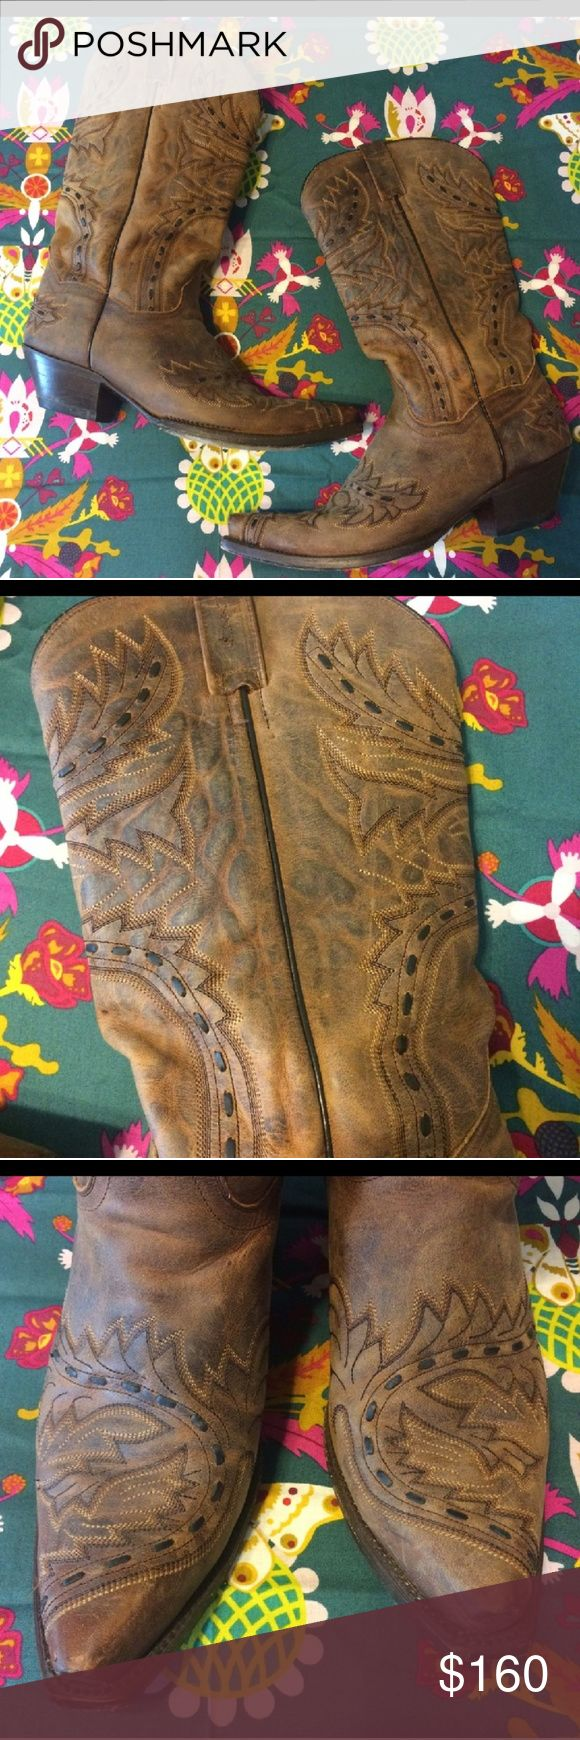 Dan Post boots! Dan Post cowboy boots, worn 3 or 4 times. Size 11,  Briwn with beautiful black stitching! Excellent excellent condition! Dan Post Shoes Heeled Boots